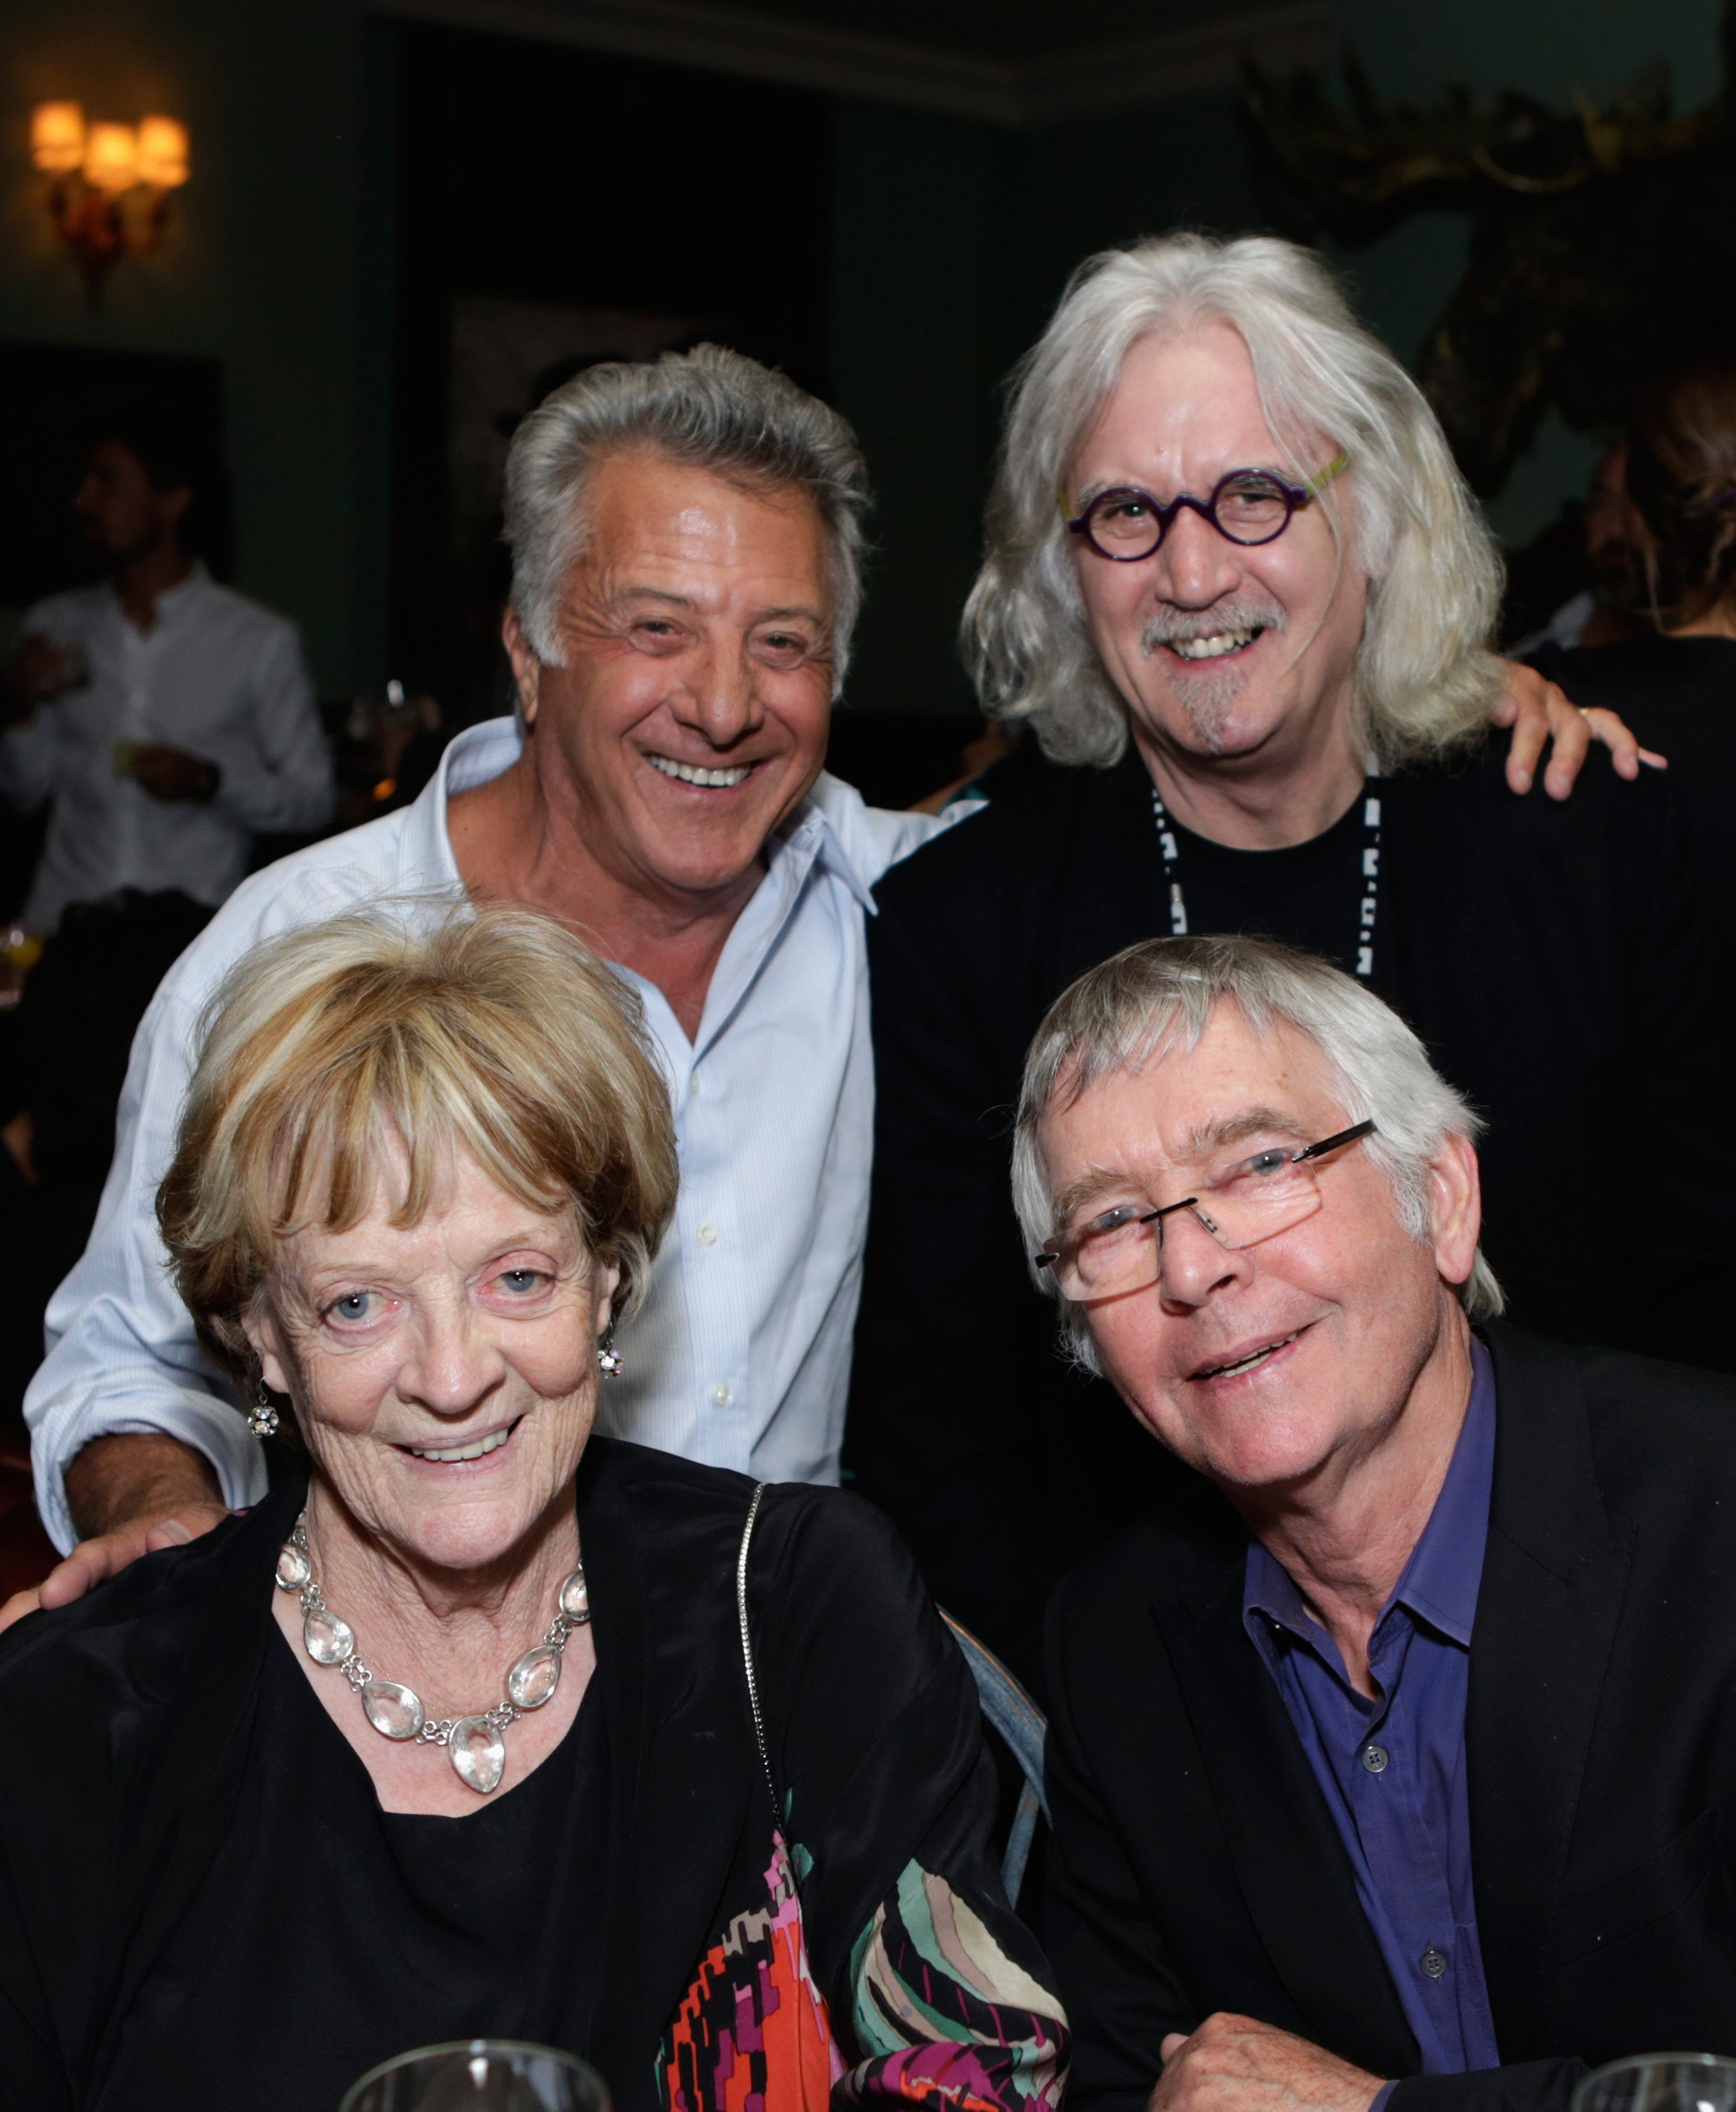 Image from https://nationalpostcom.files.wordpress.com/2012/09/dustin-hoffman-billy-connolly-maggie-smith-and-tom-courtenay-at-the-grey-goose-party-for-quartet-at-soho-house-toronto.jpg.